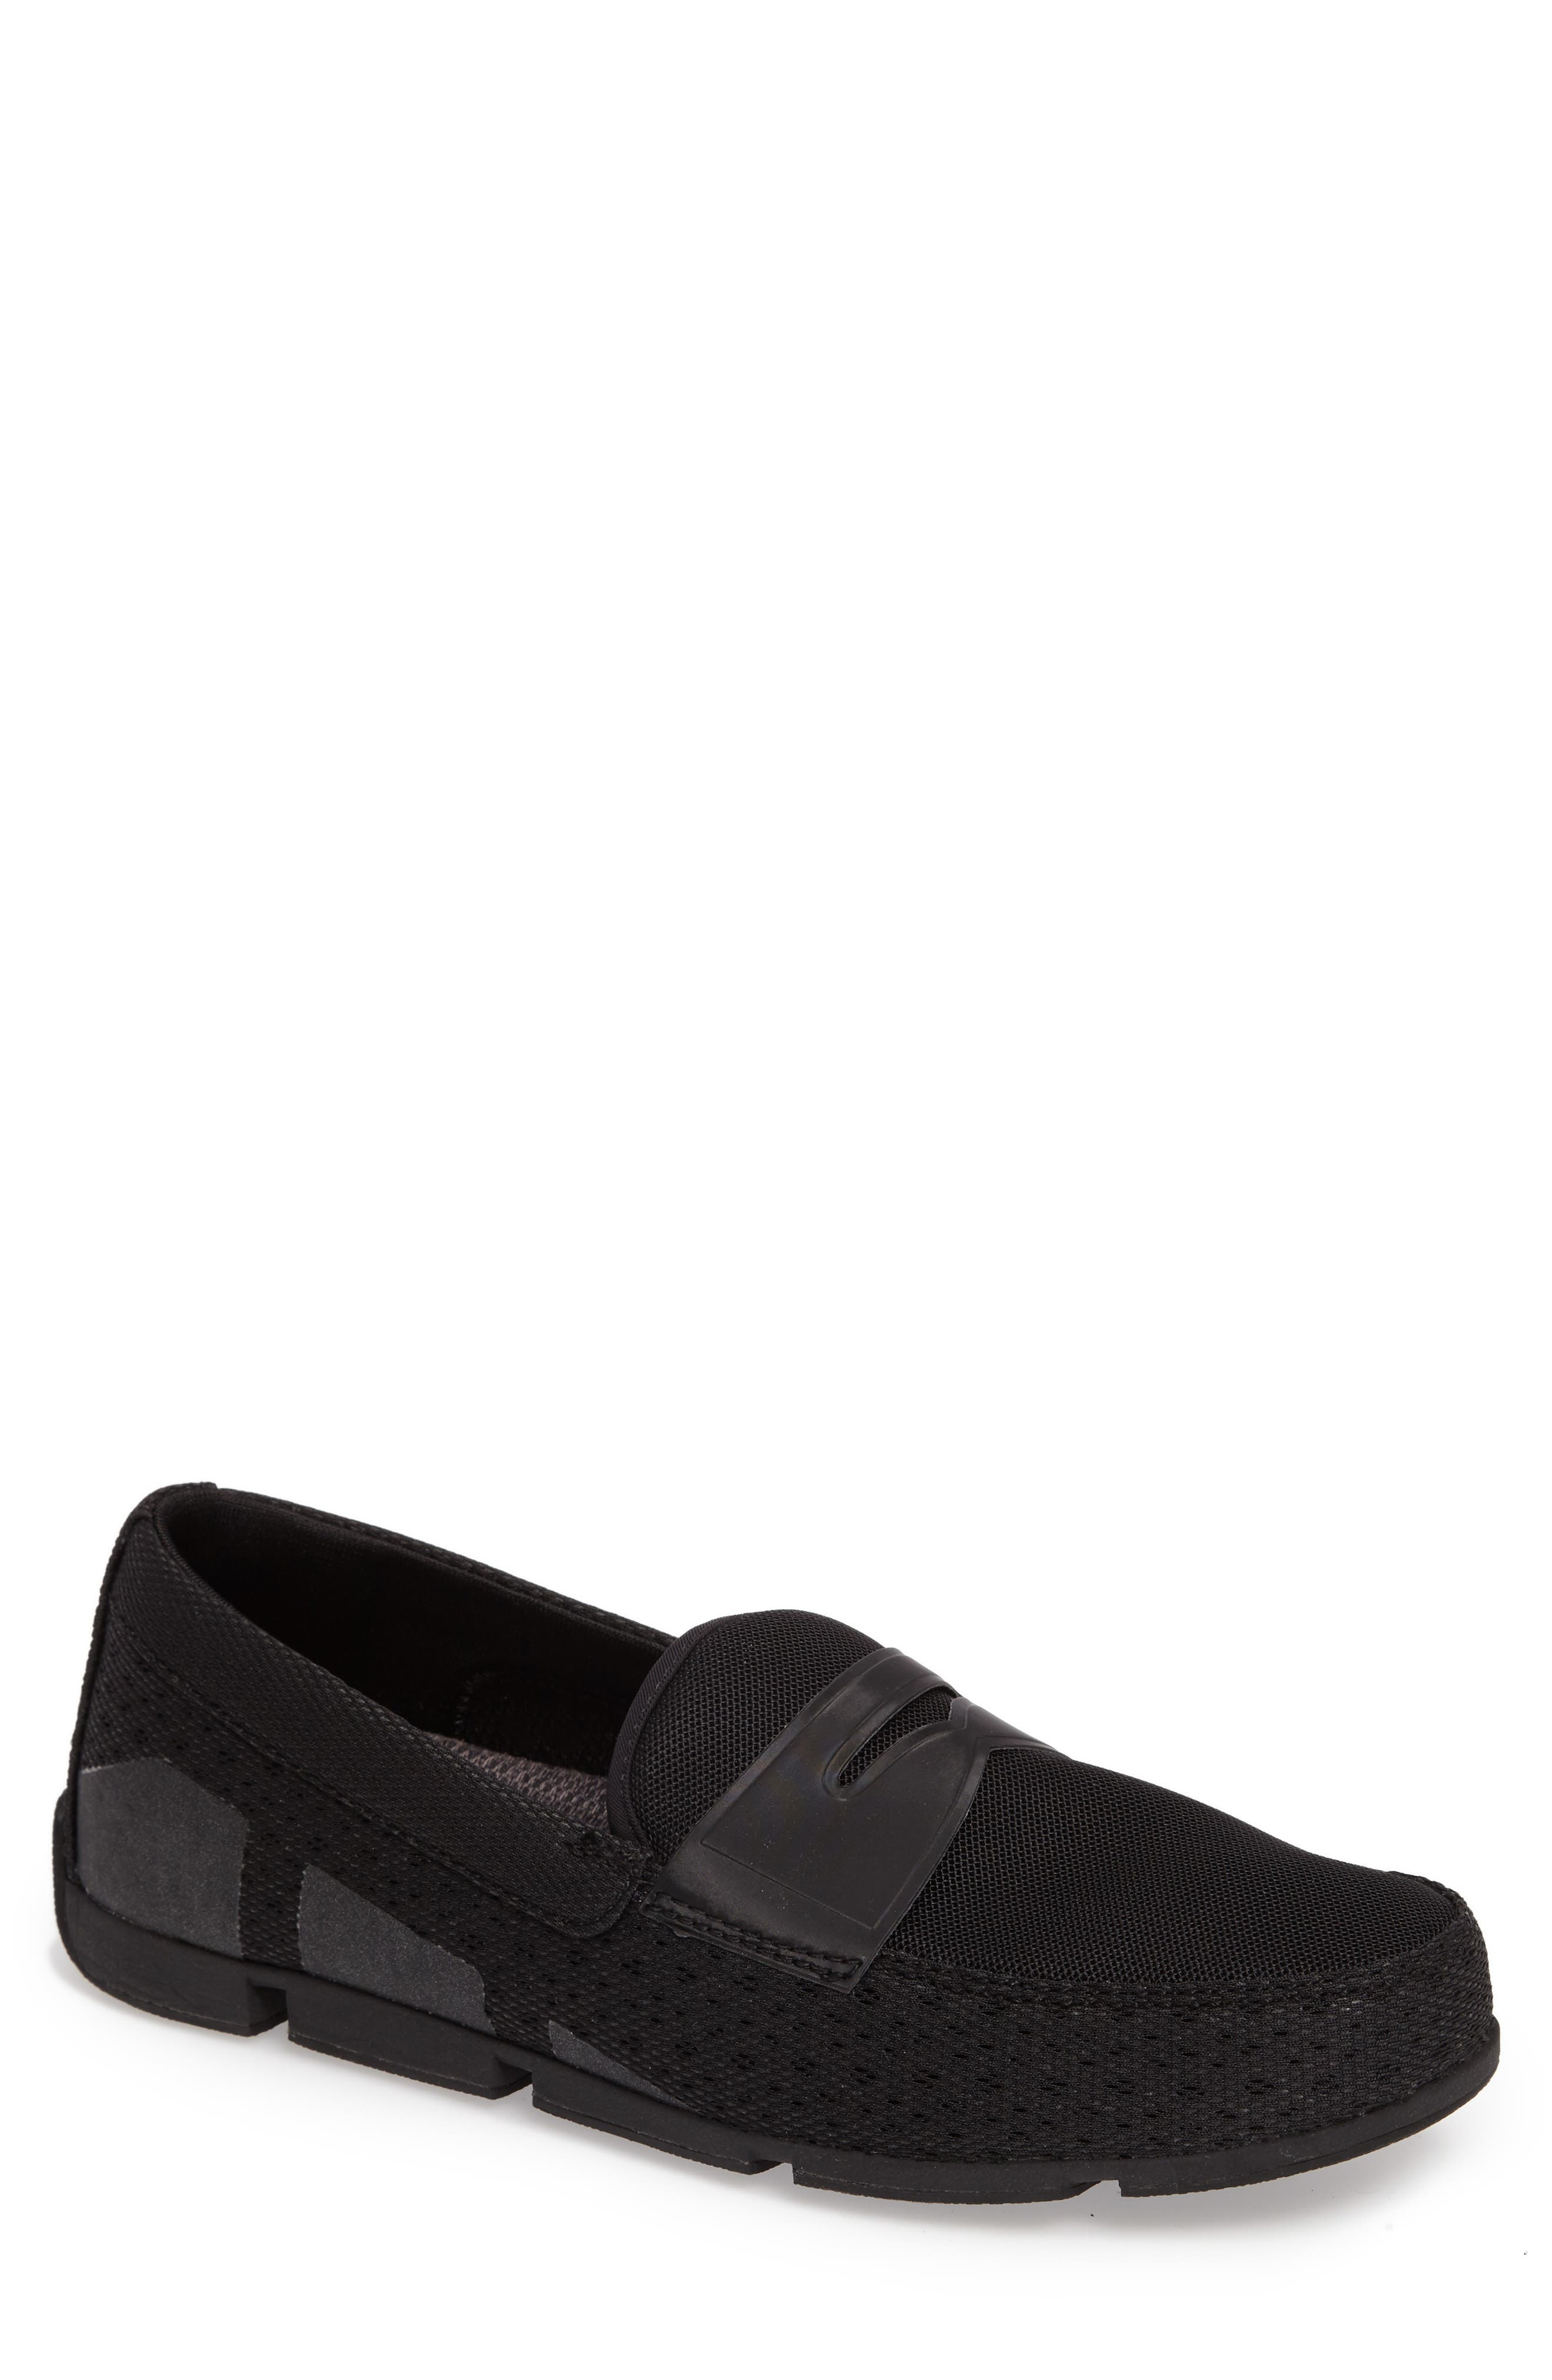 Breeze Penny Loafer,                             Main thumbnail 1, color,                             001